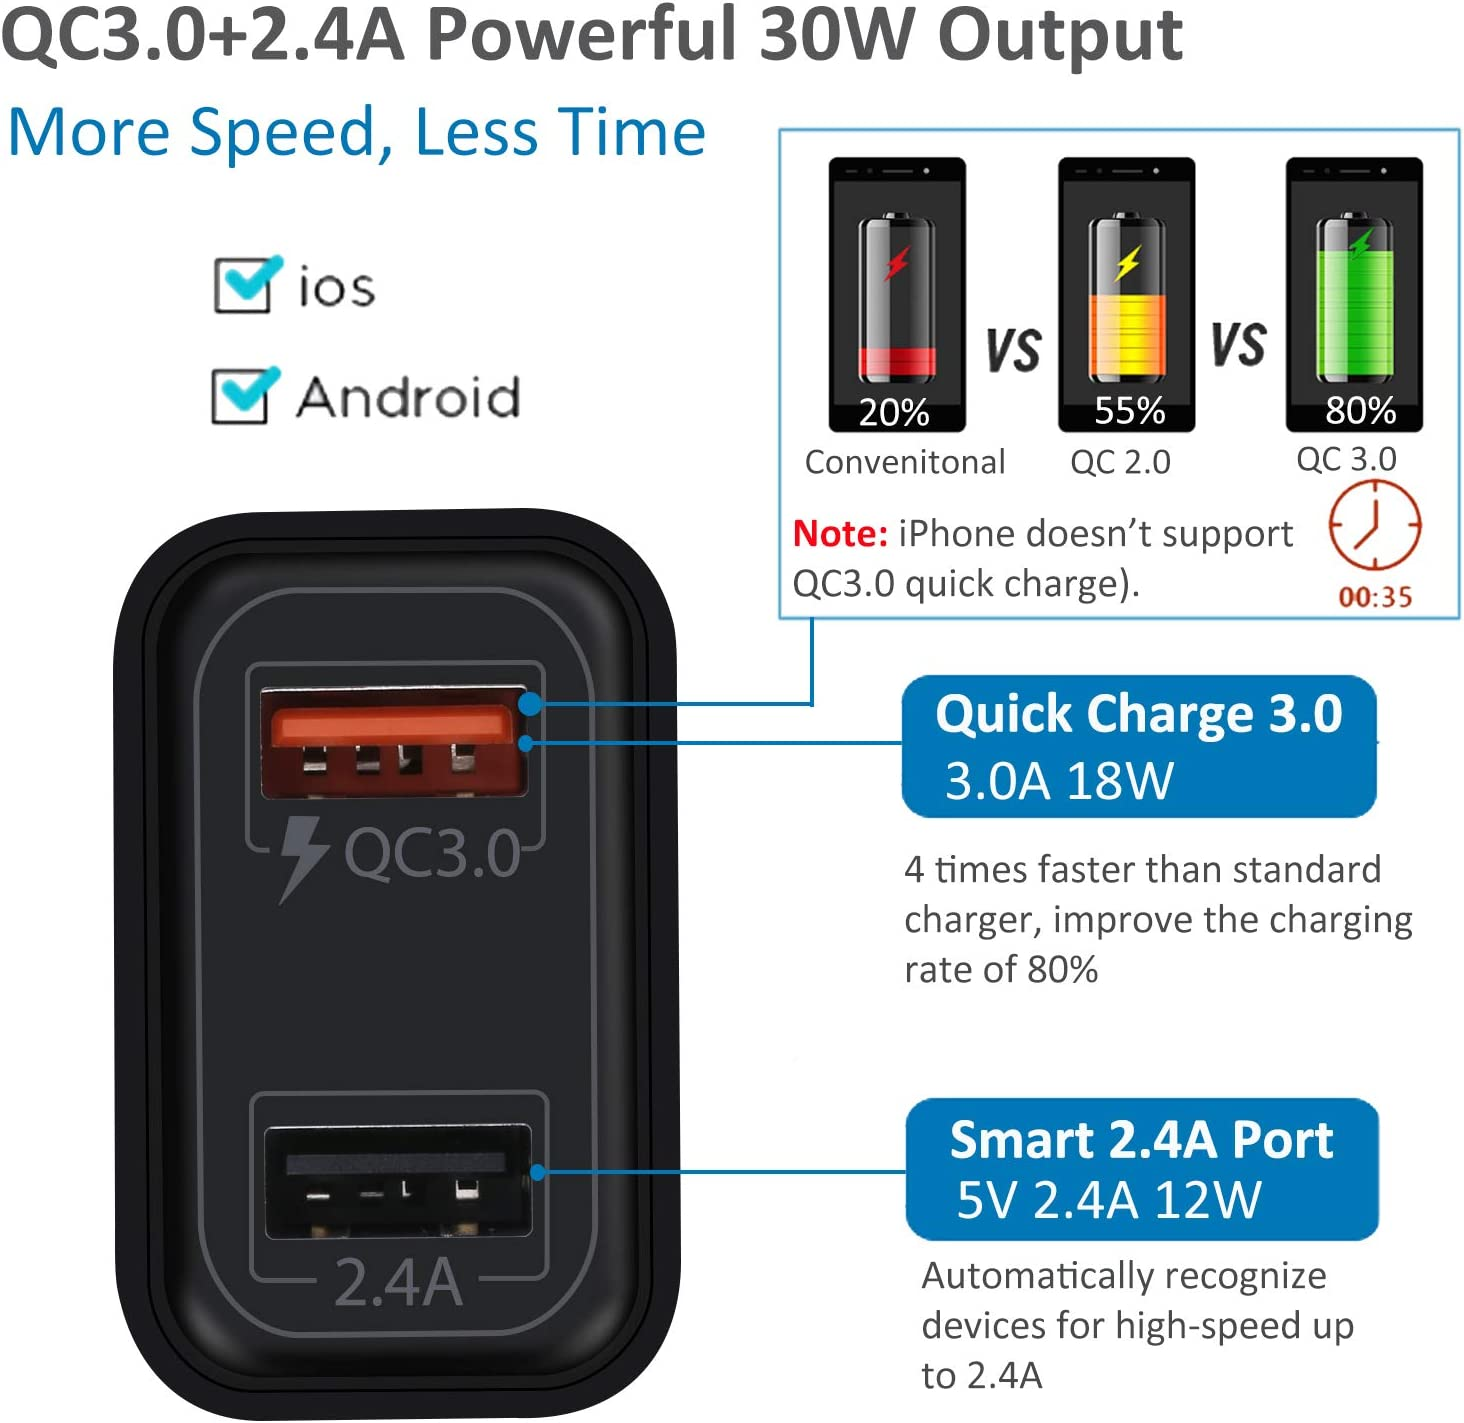 Pofesun Fast Charge QC 3.0 Wall Charger Dual Port with 6ft USB-C Cable Compatible with Samsung Galaxy S10 S10 S9 S8 Plus Note 10 9 8 USB C Charger LG V30 V20 G6 G5,Google Pixel,HTC,OnePlus-Black